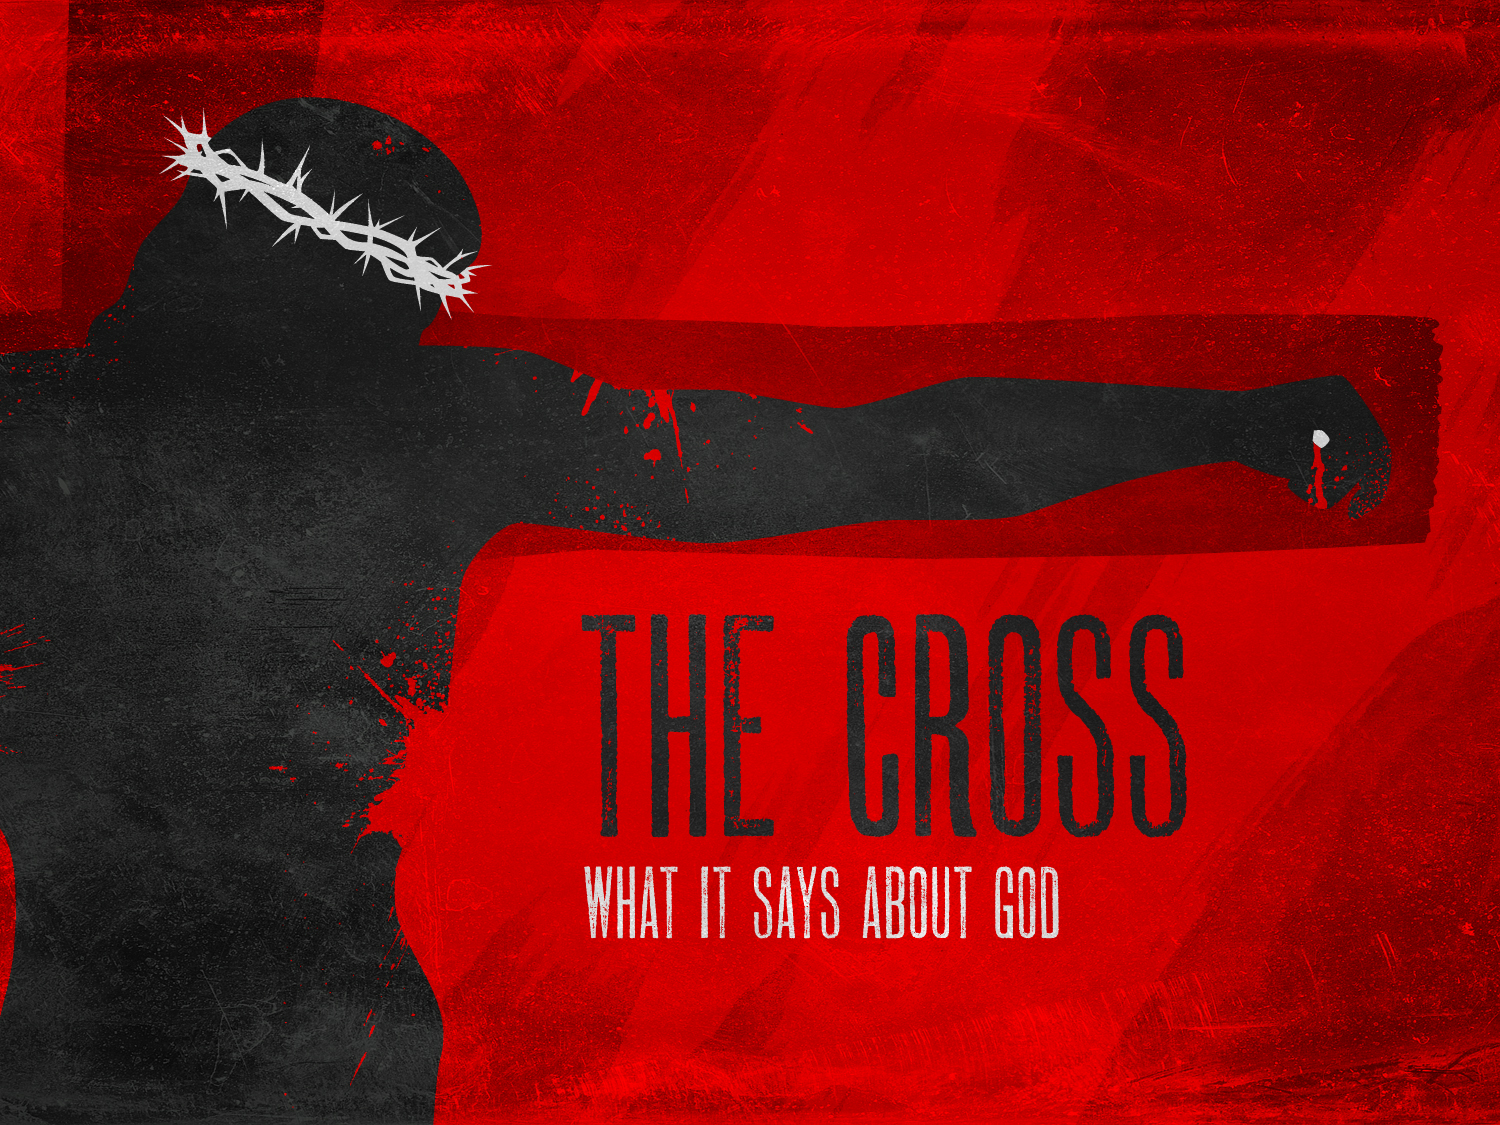 jonathans blog what the cross says about gods love